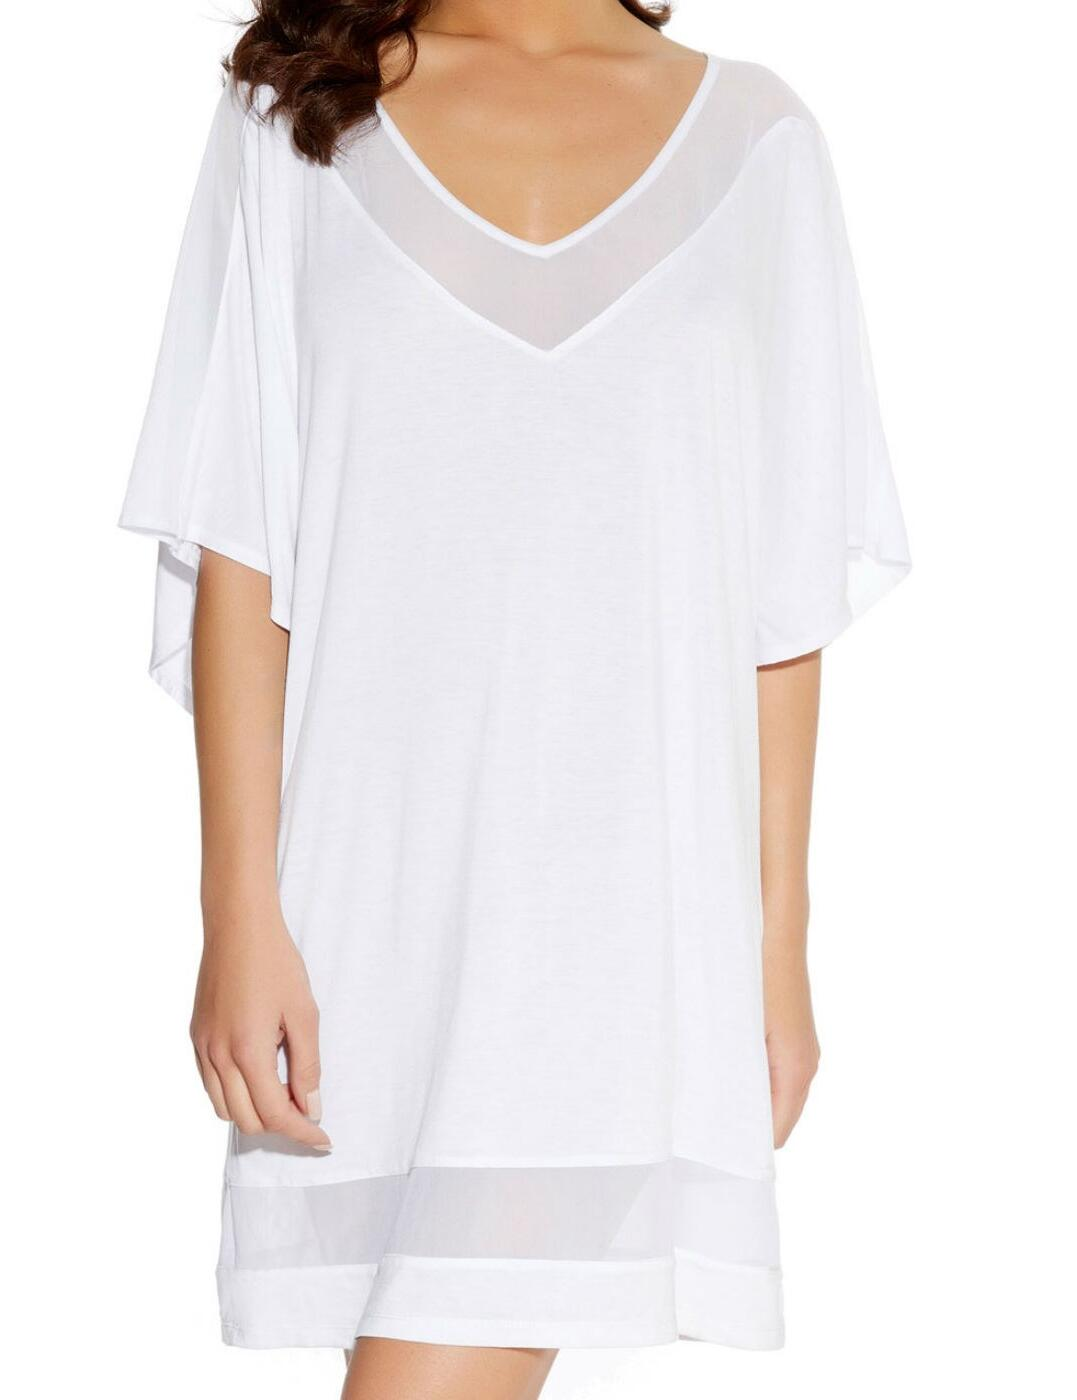 3001 Freya Rock Star Tunic Cover Up - 3001 White